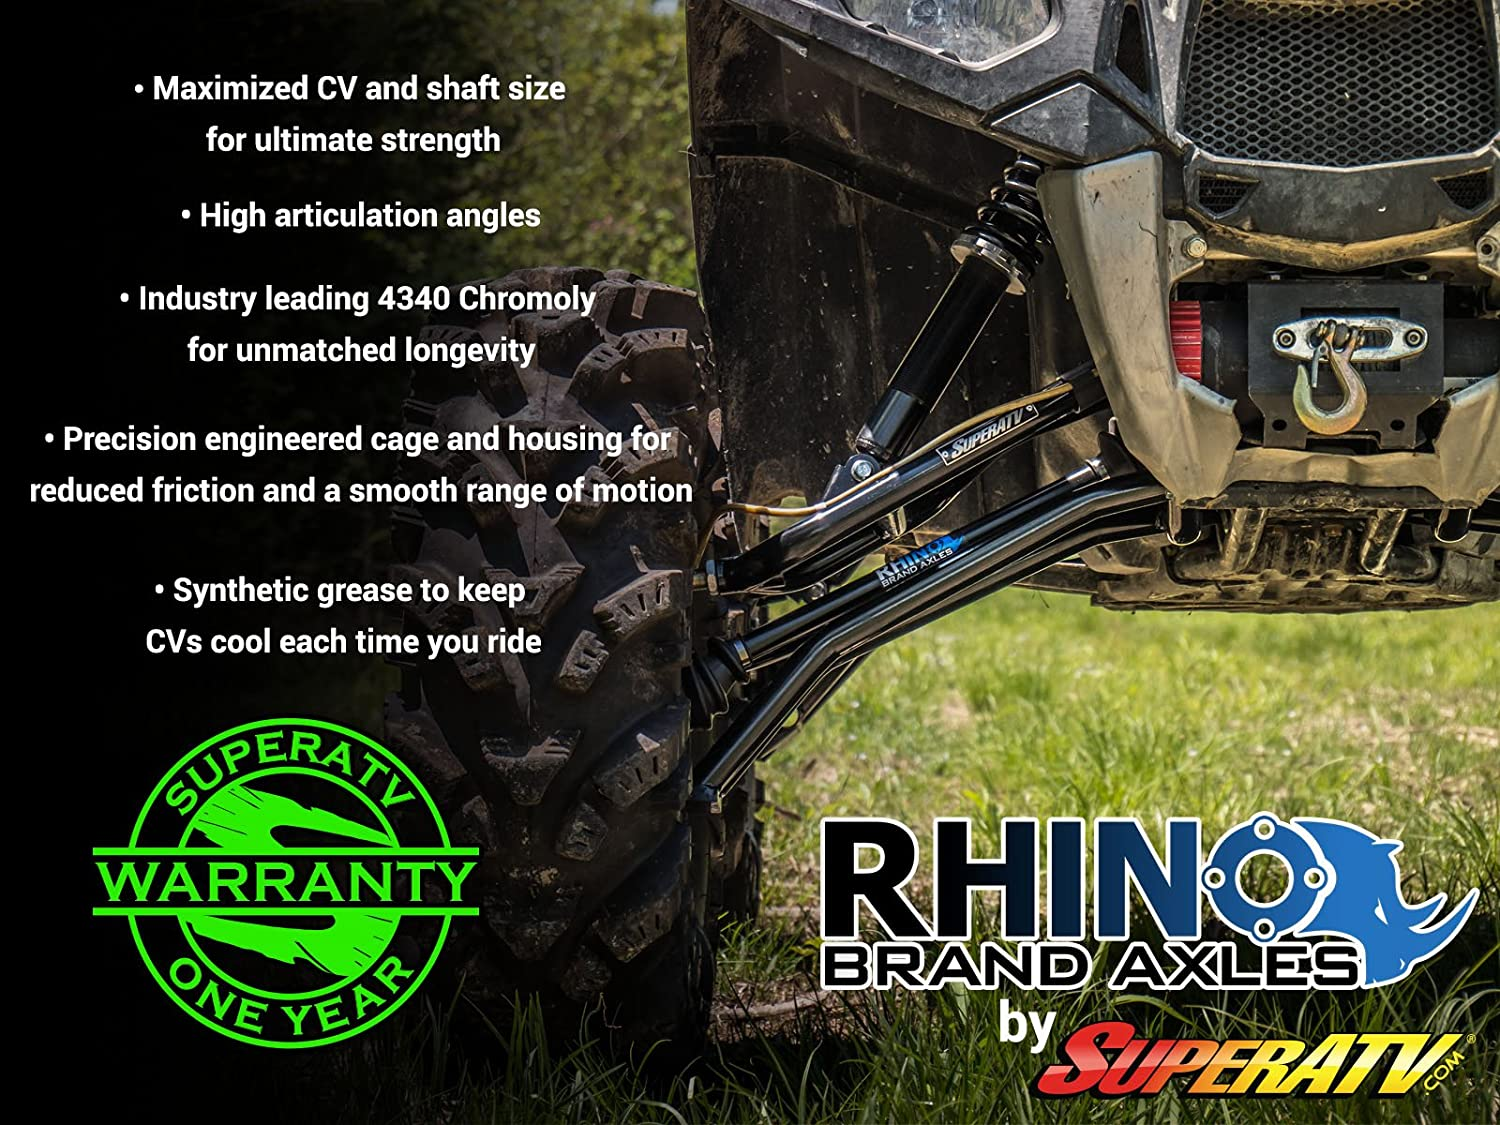 SuperATV Heavy Duty Rhino Brand Front Axle for Polaris Sportsman XP 850 FRONT Axle With a 6 Lift Kit 2009+